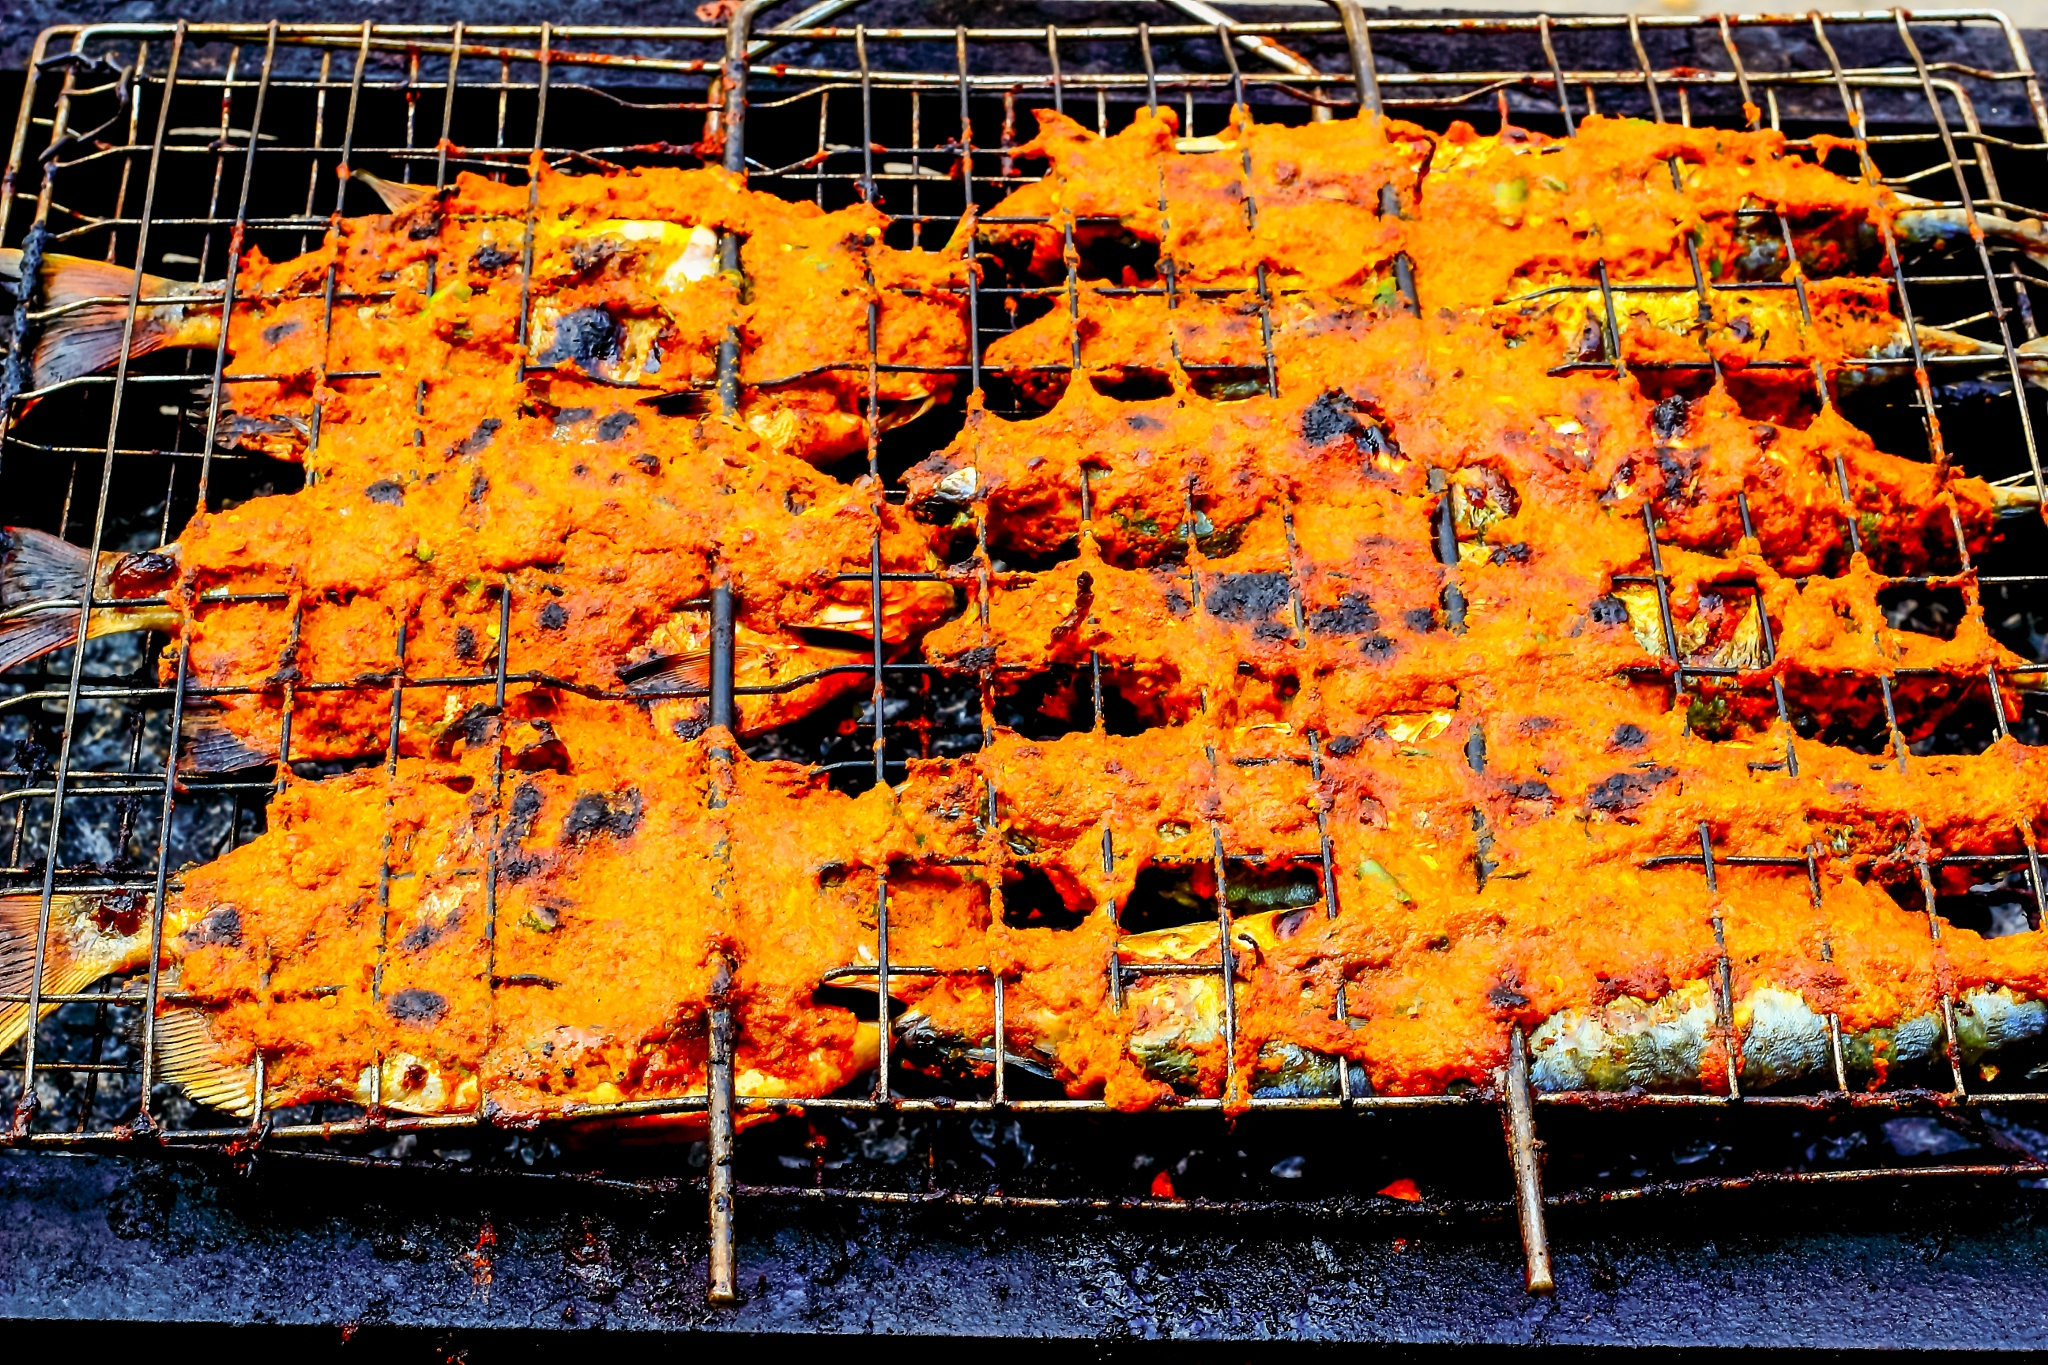 grilled fish by HendraYong